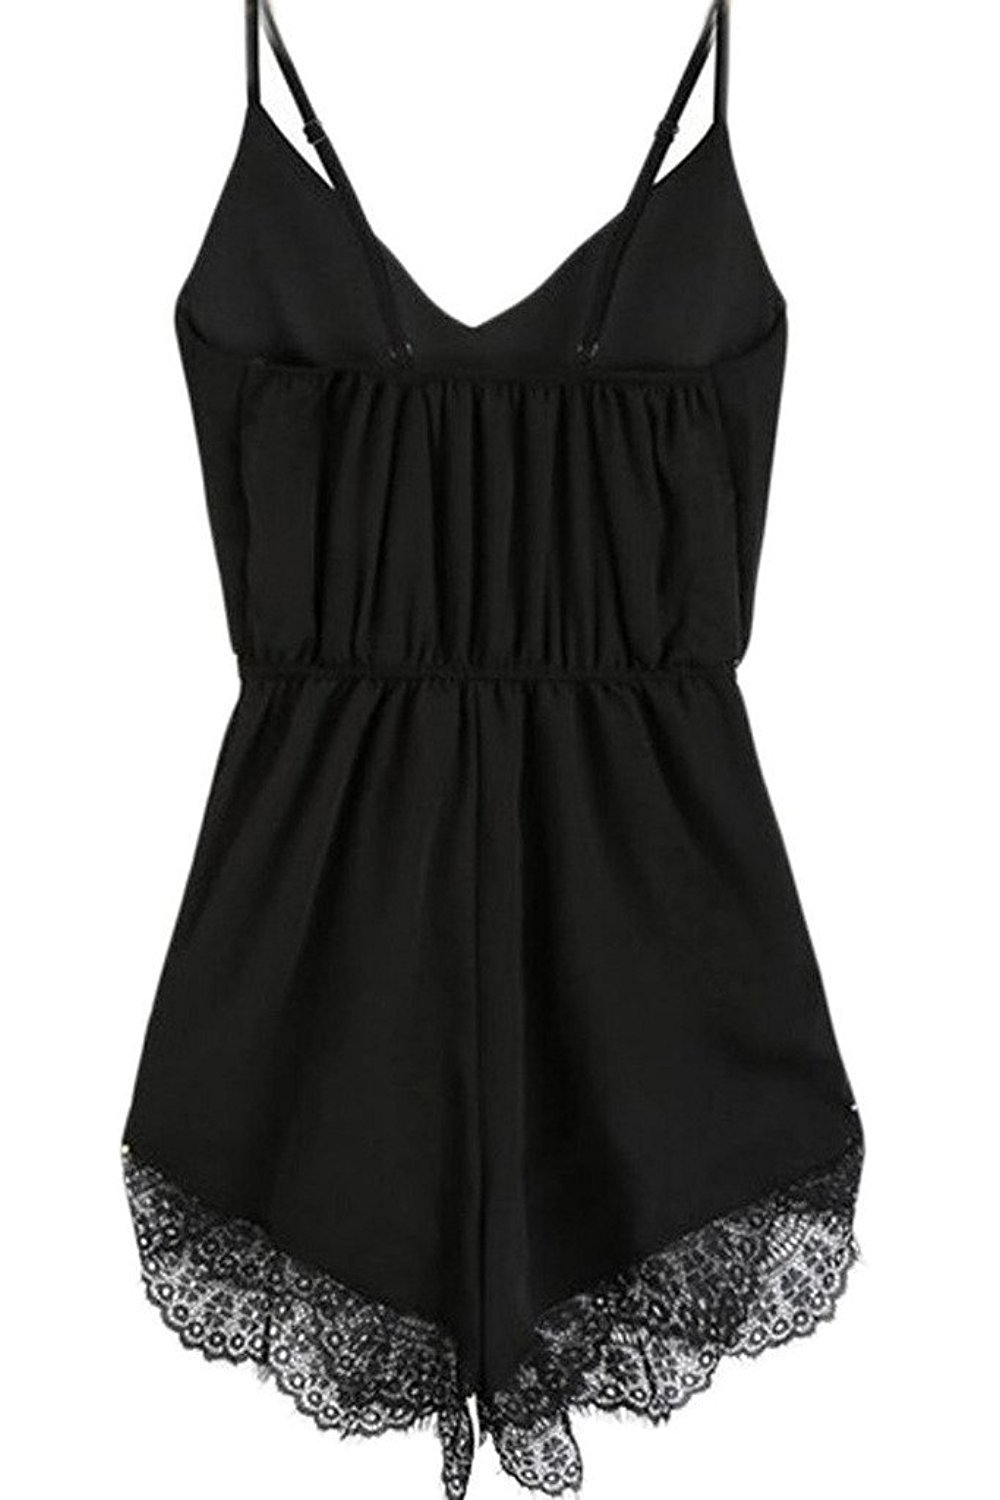 FACE N FACE Women's Lace Chiffon Sleeveless Jumpsuit Rompers Large Black by FACE N FACE (Image #3)